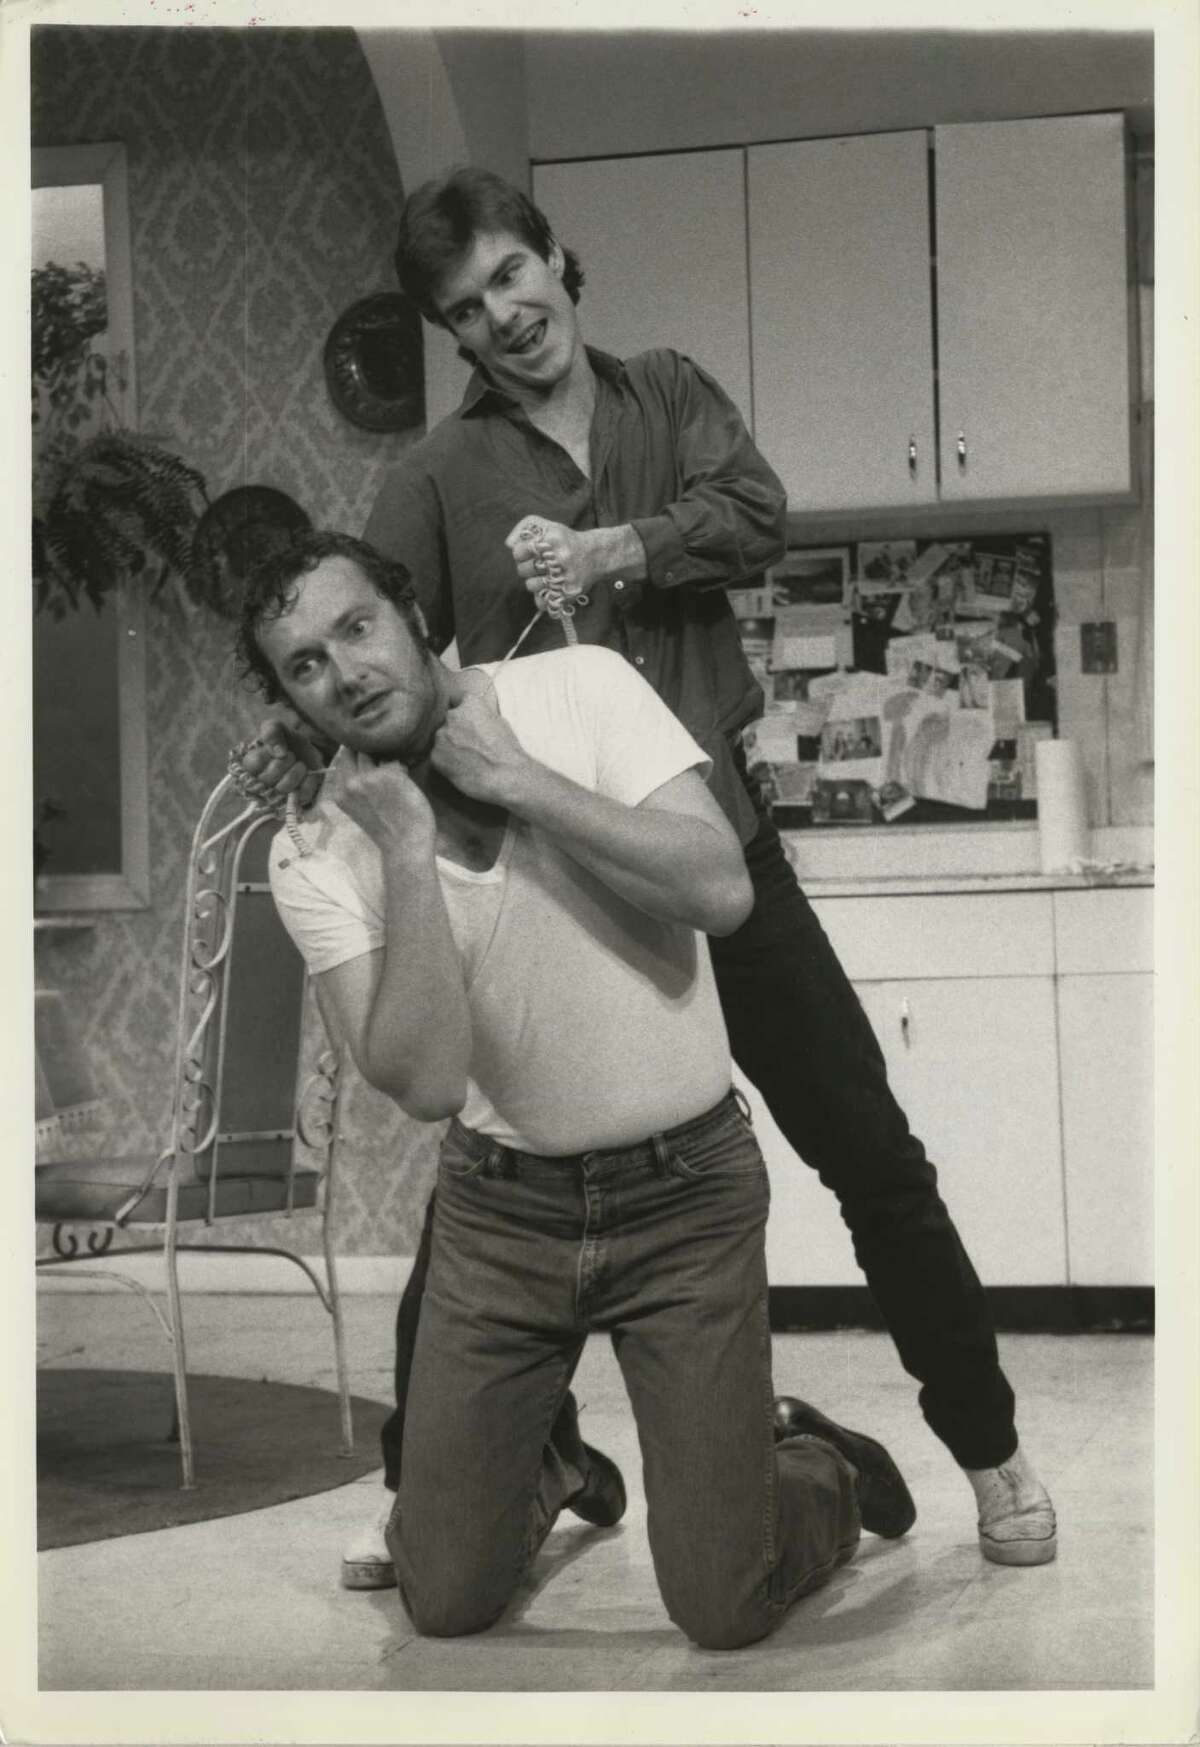 Actors Dennis and Randy Quaid were born in Houston and grew up in Bellaire. Dennis went to the University of Houston. Here, Dennis attempts to strangle his kneeling brother Randy in the off-Broadway play